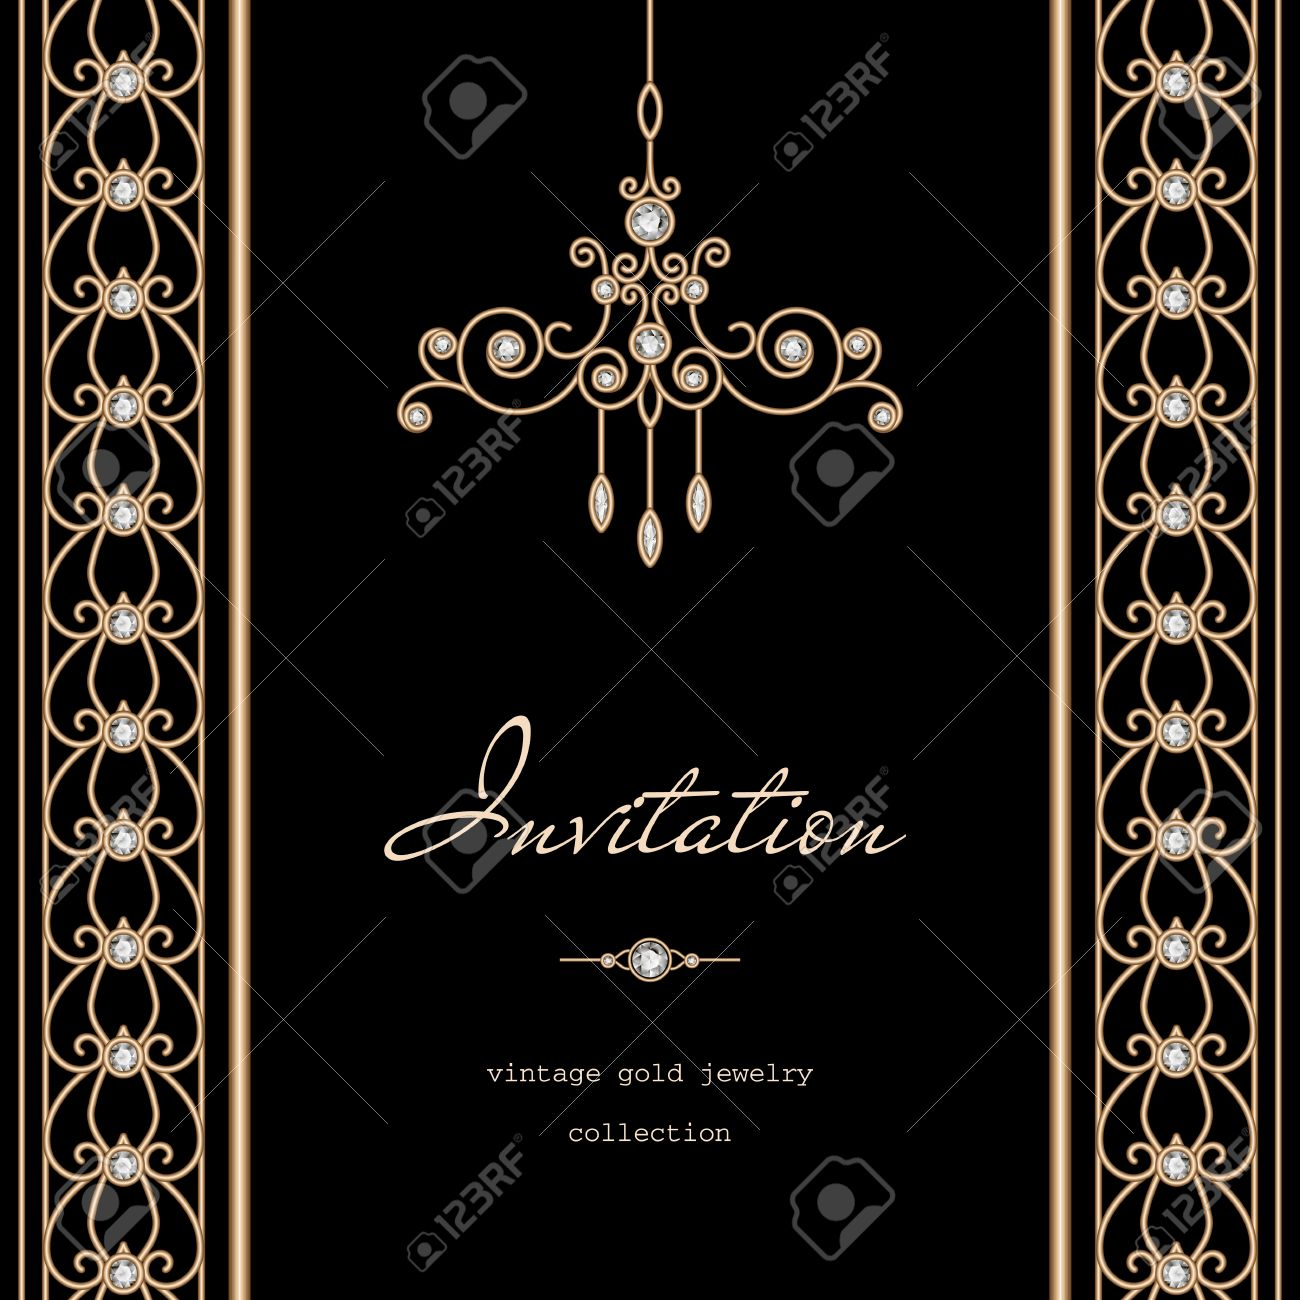 Vintage Gold Frame Invitation Template With Jewelry Borders